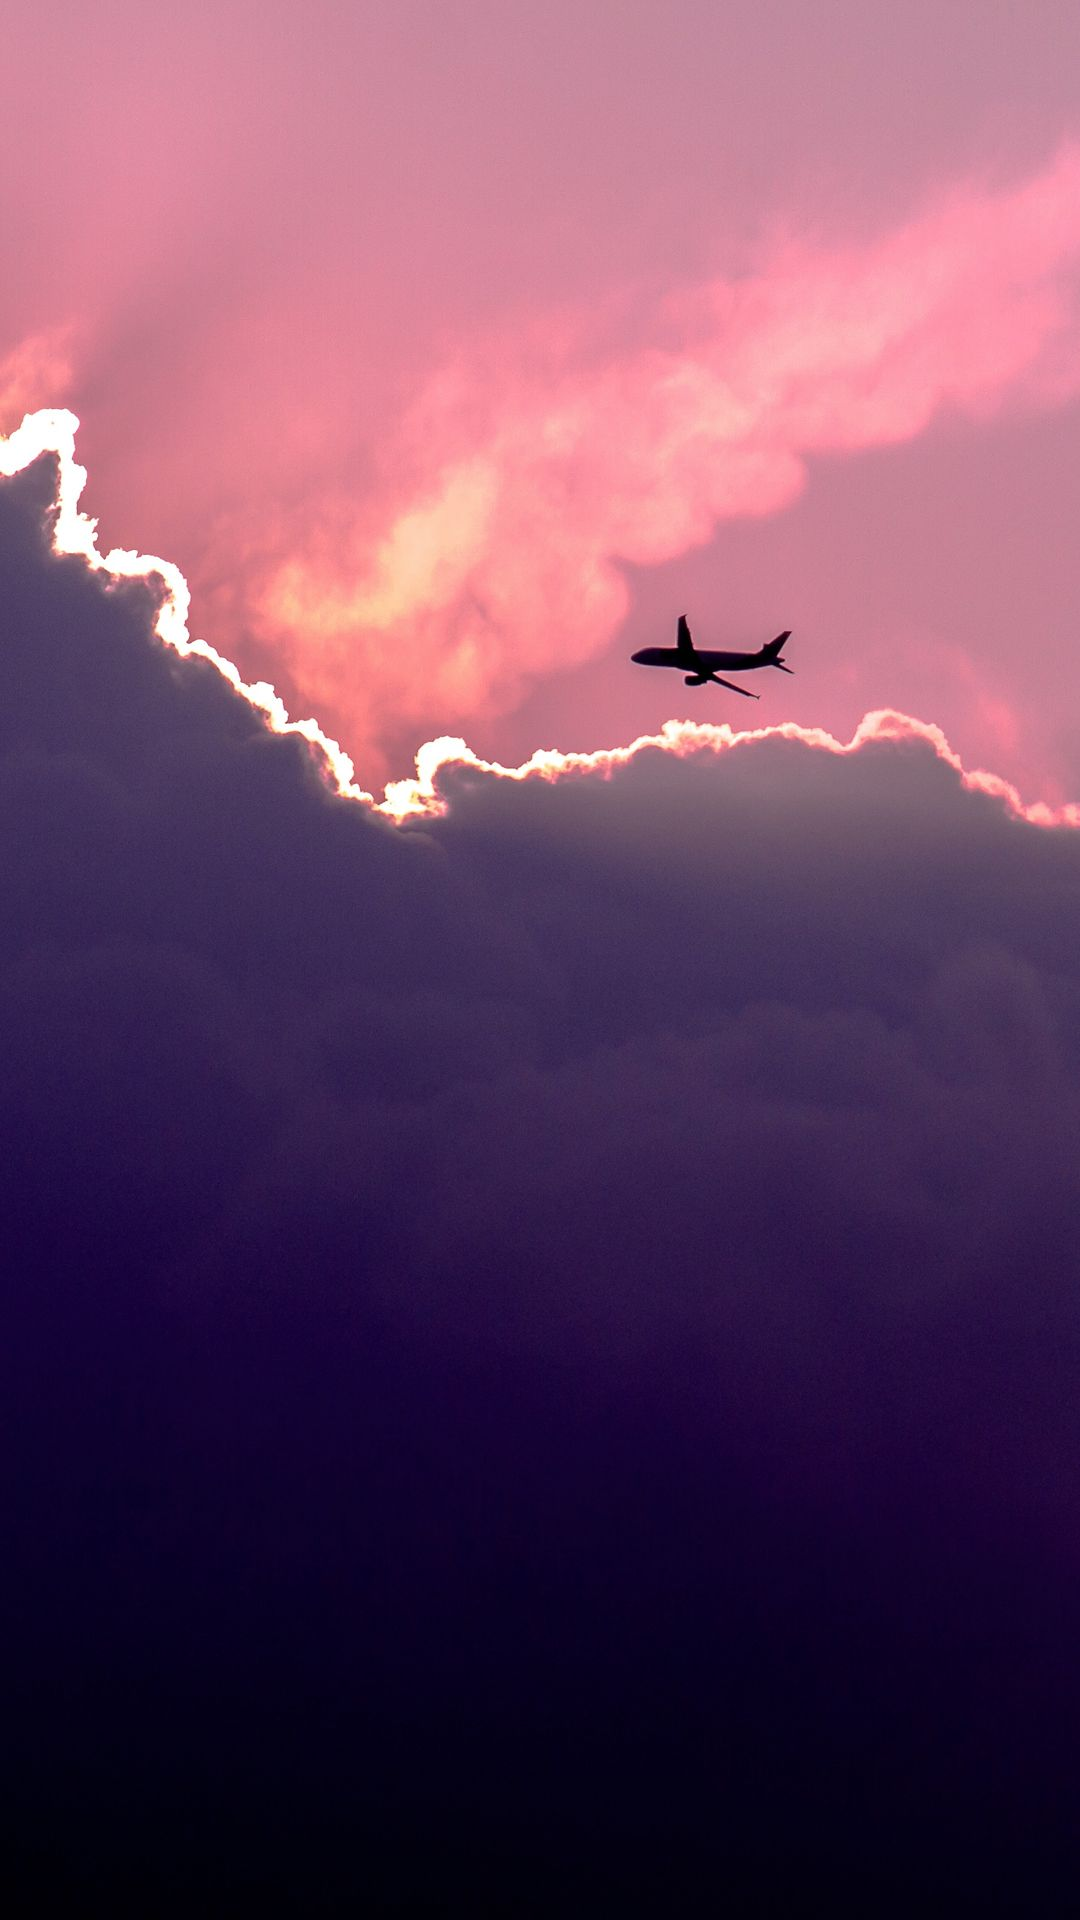 aircraft images in clouds wallpaper - photo #24